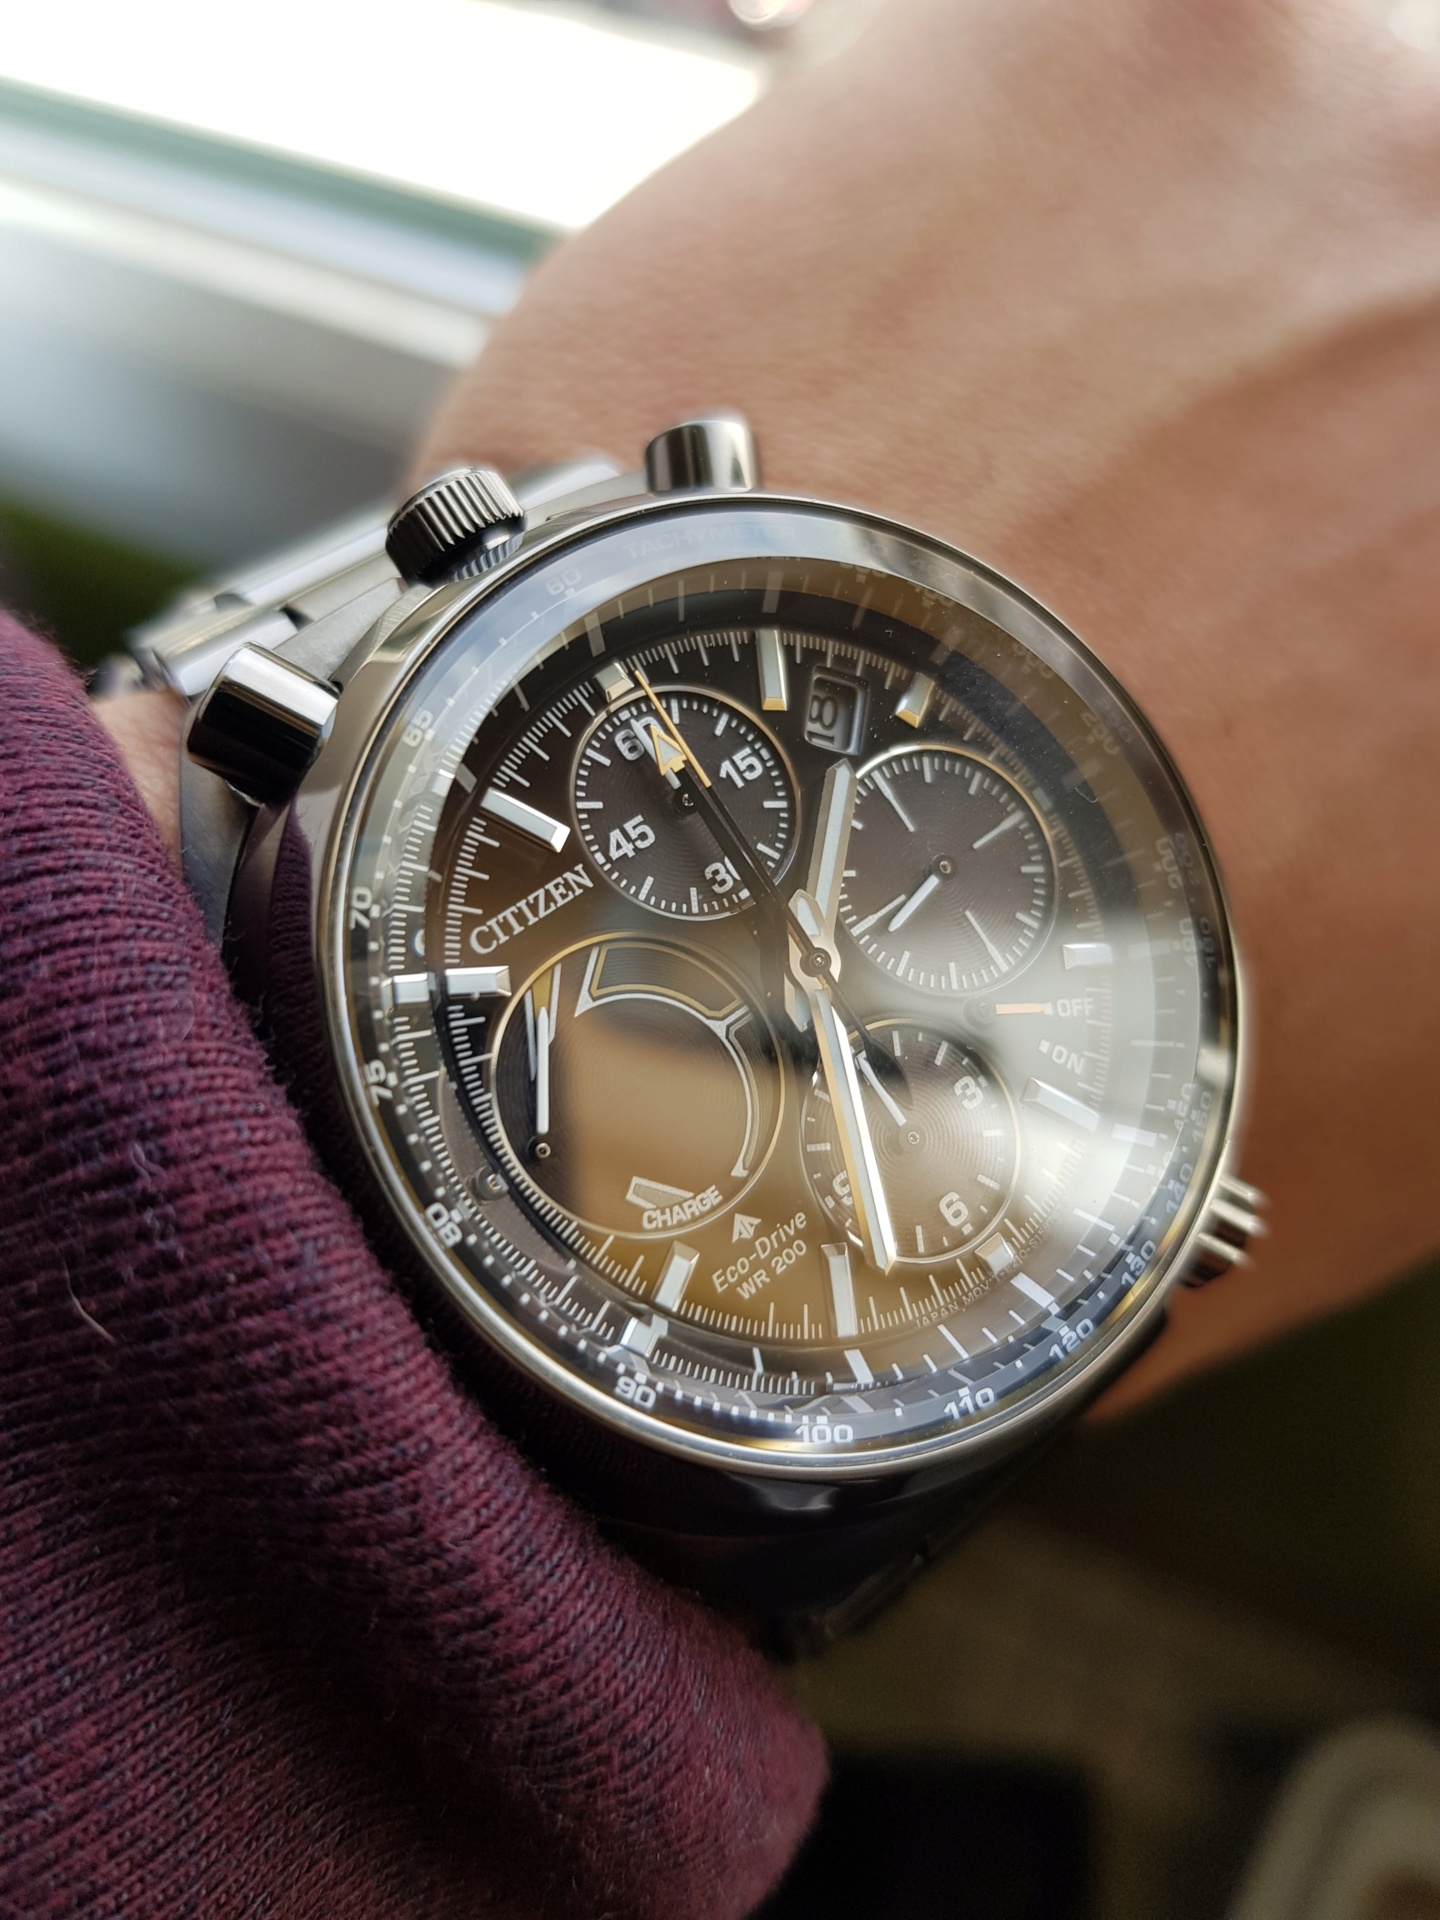 citizen - Présentation : Citizen Promaster Chrono 100th Anniversary 20190115